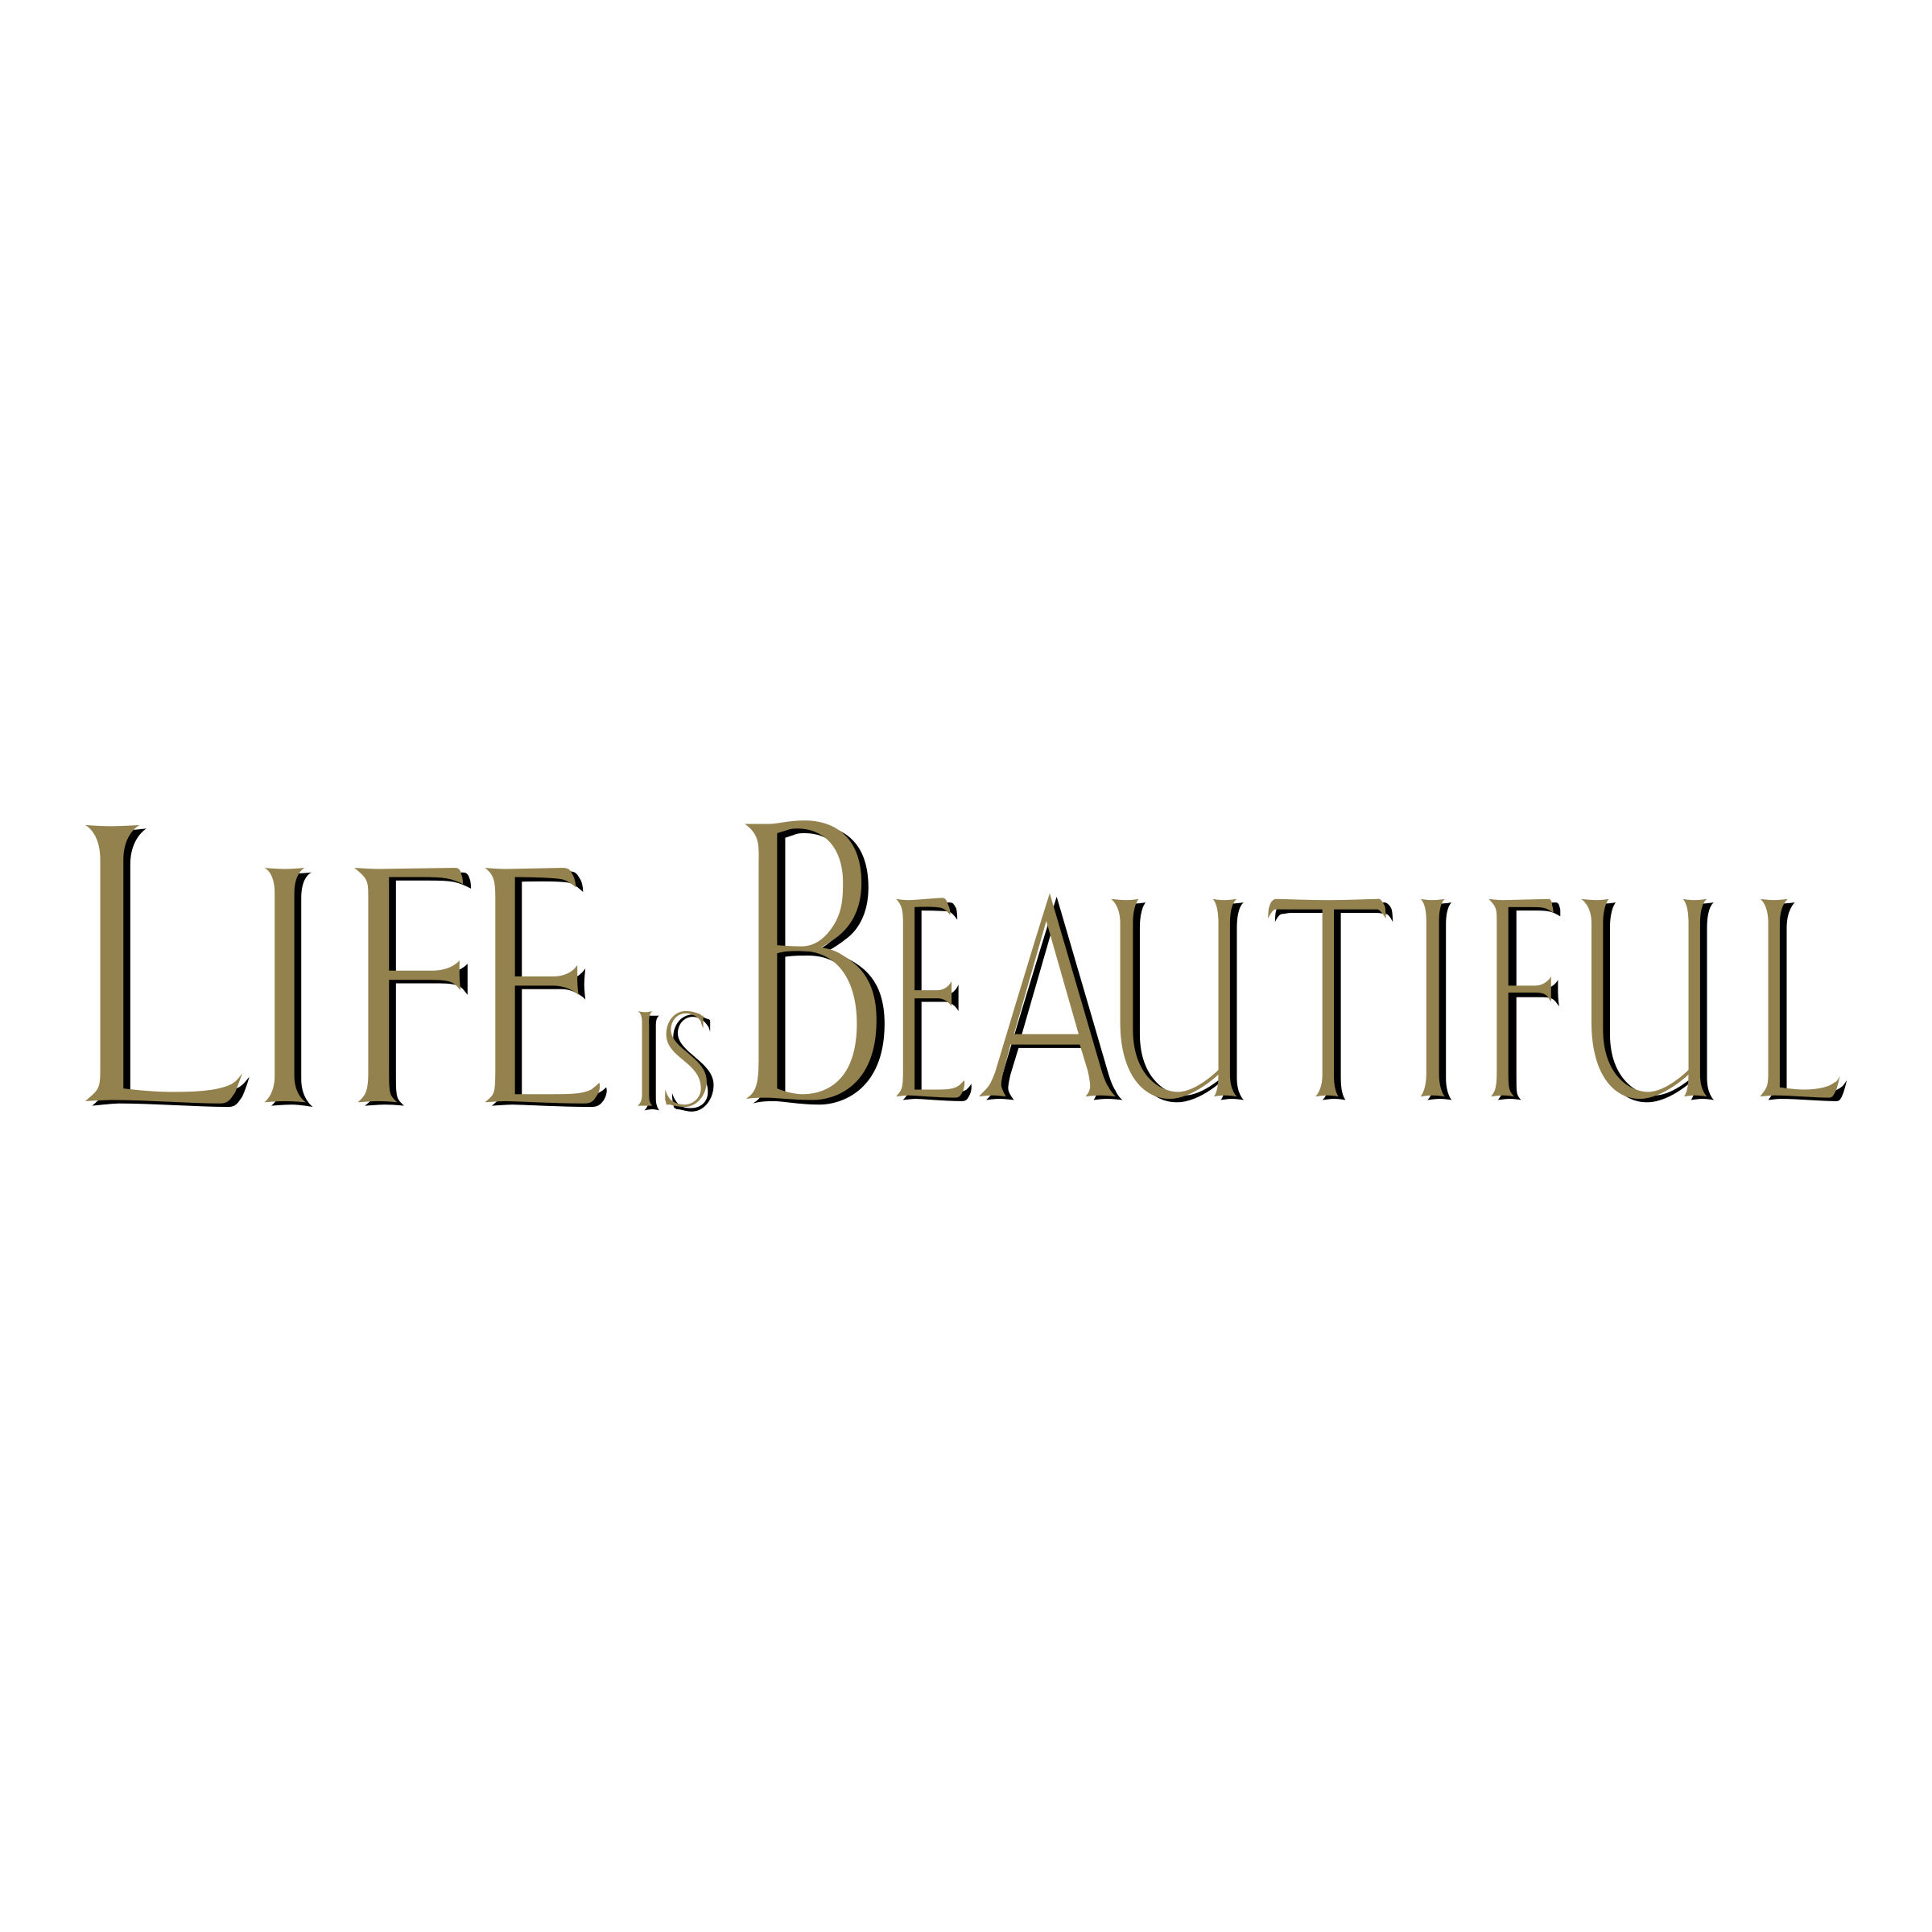 Life Is Beautiful Logo PNG Transparent & SVG Vector.